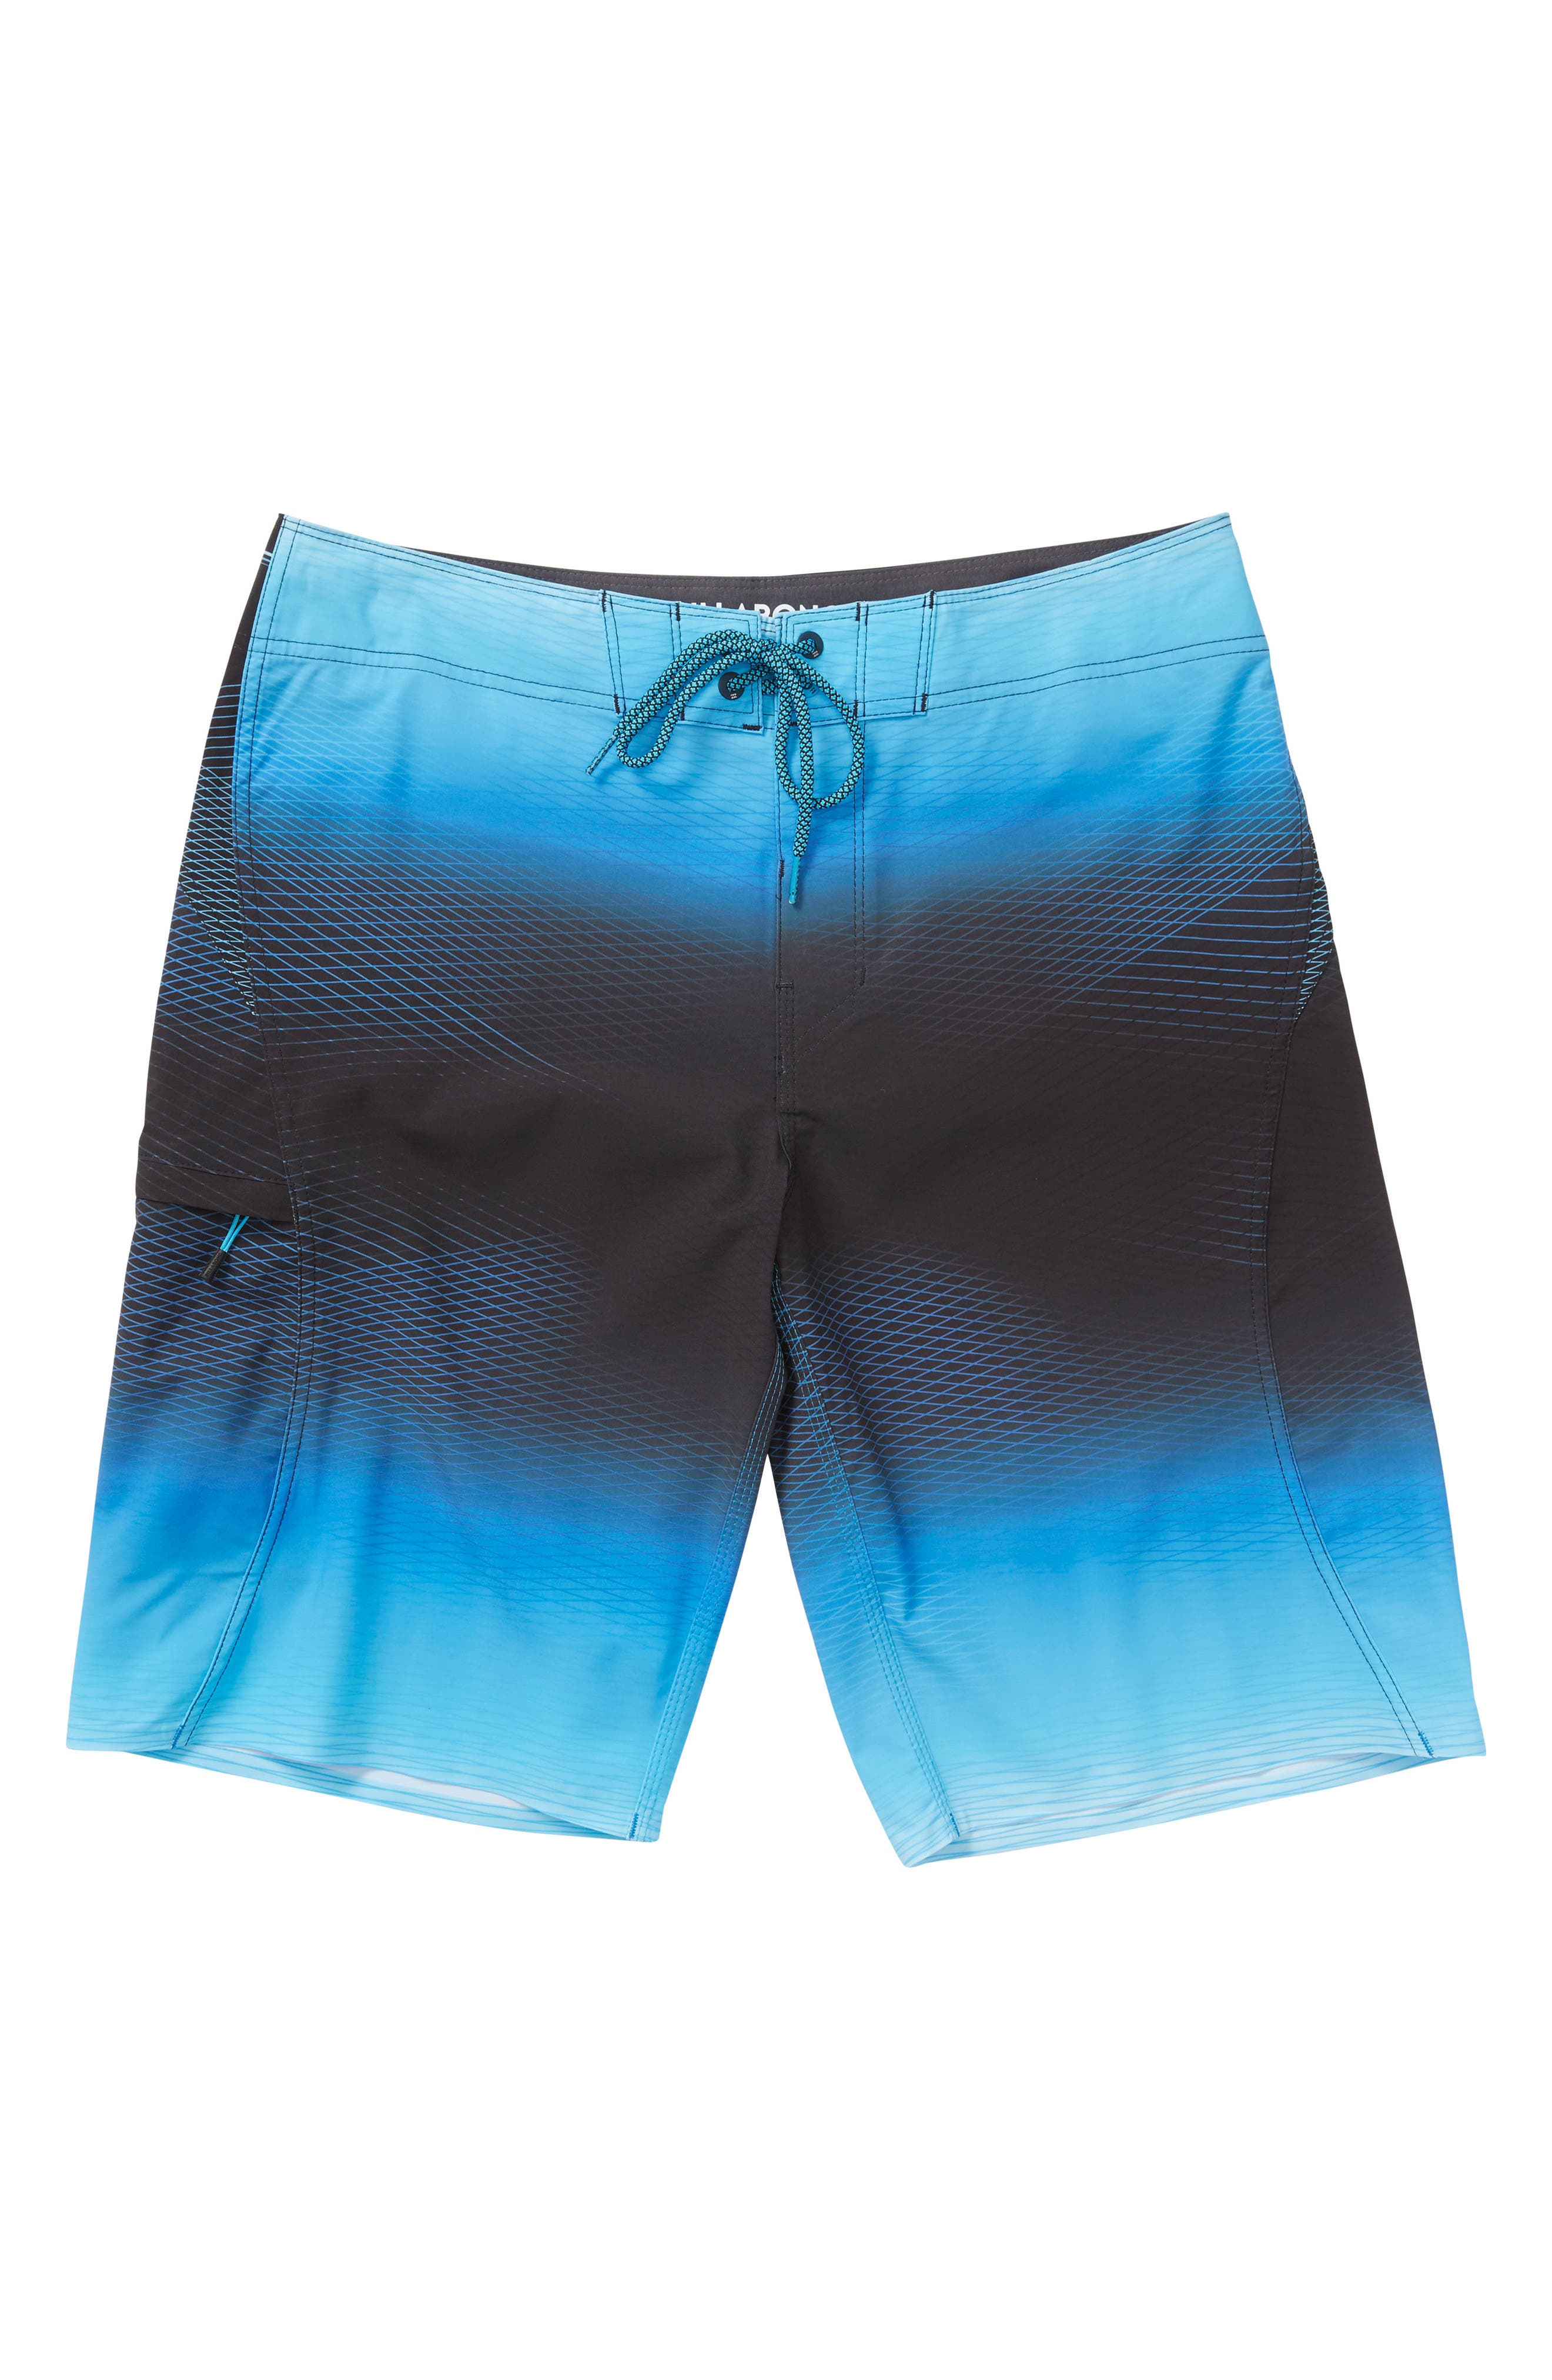 Billabong Fluid X Performance Fit Board Shorts (Big Boys)